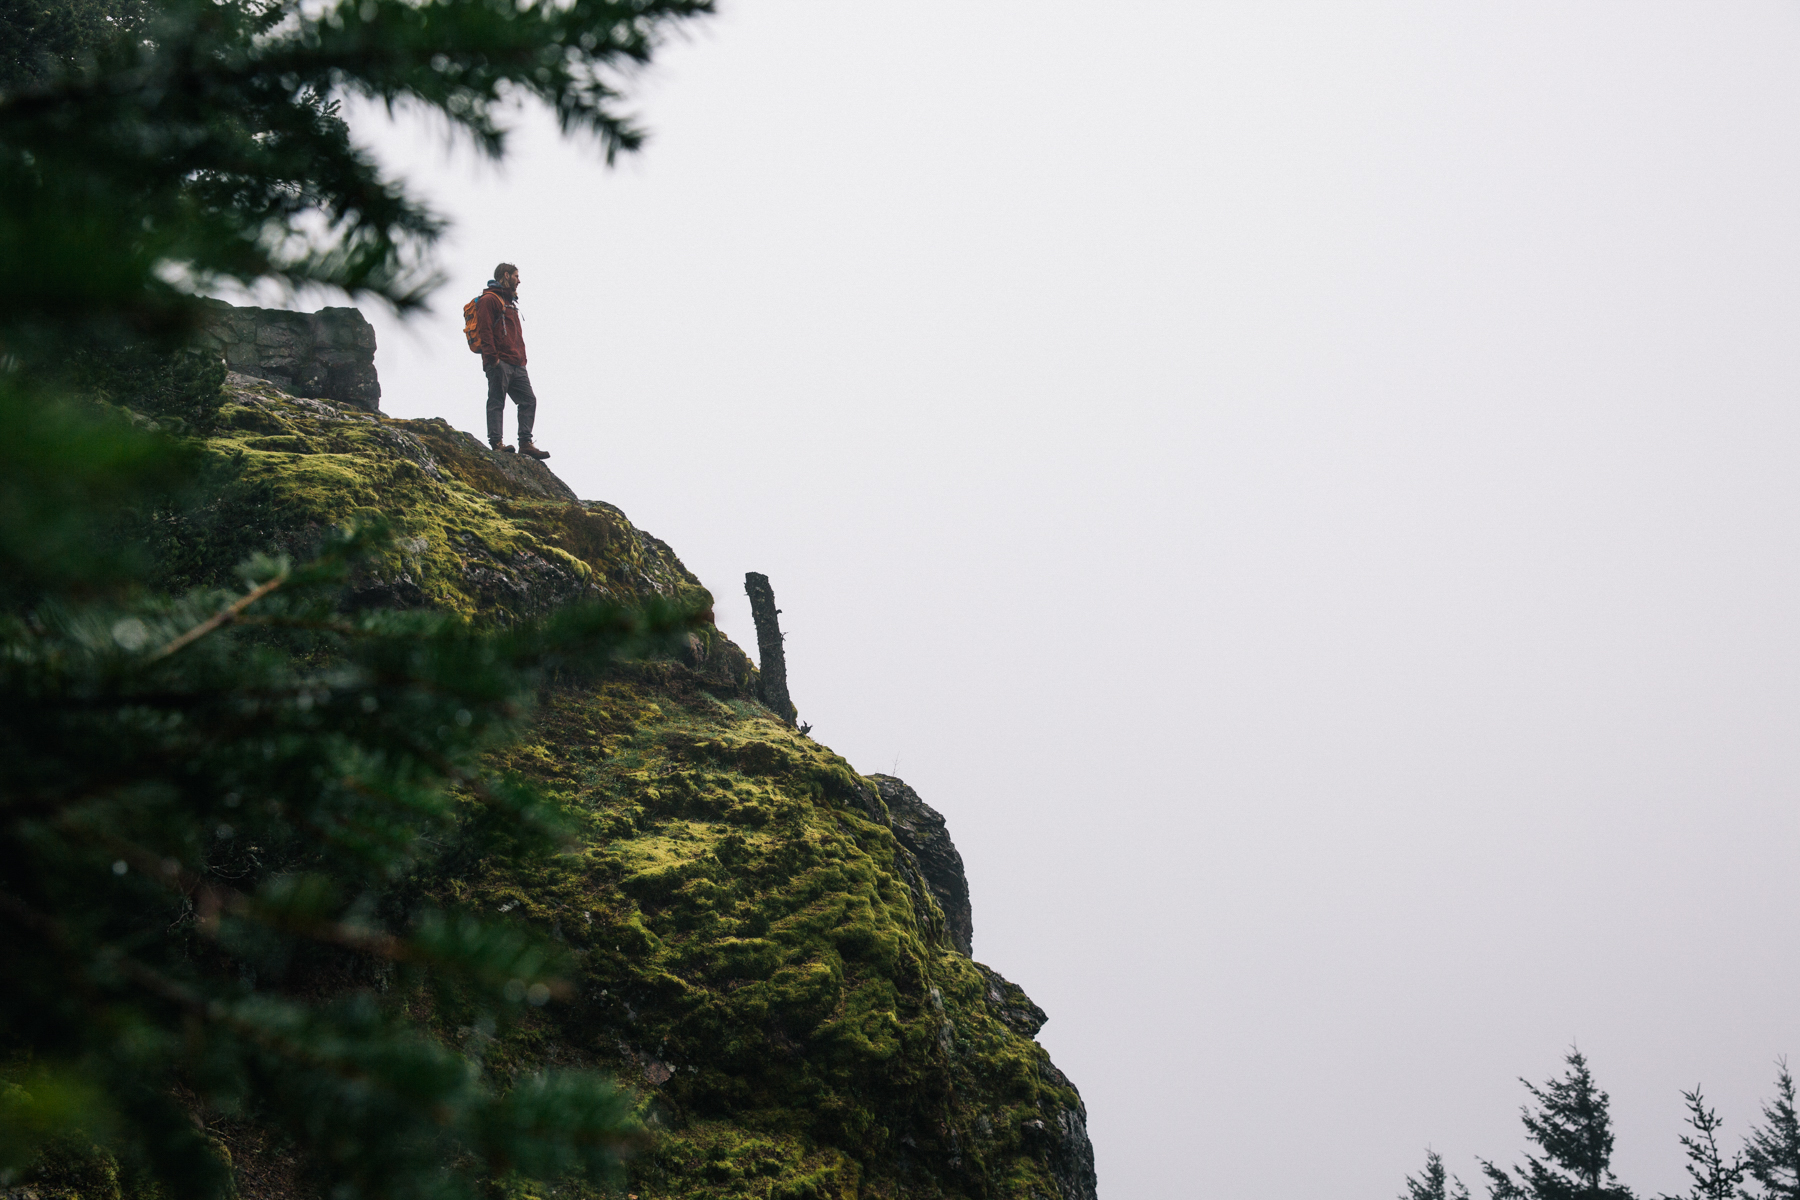 Mark Sollors, Standing on side of moss covered cliff